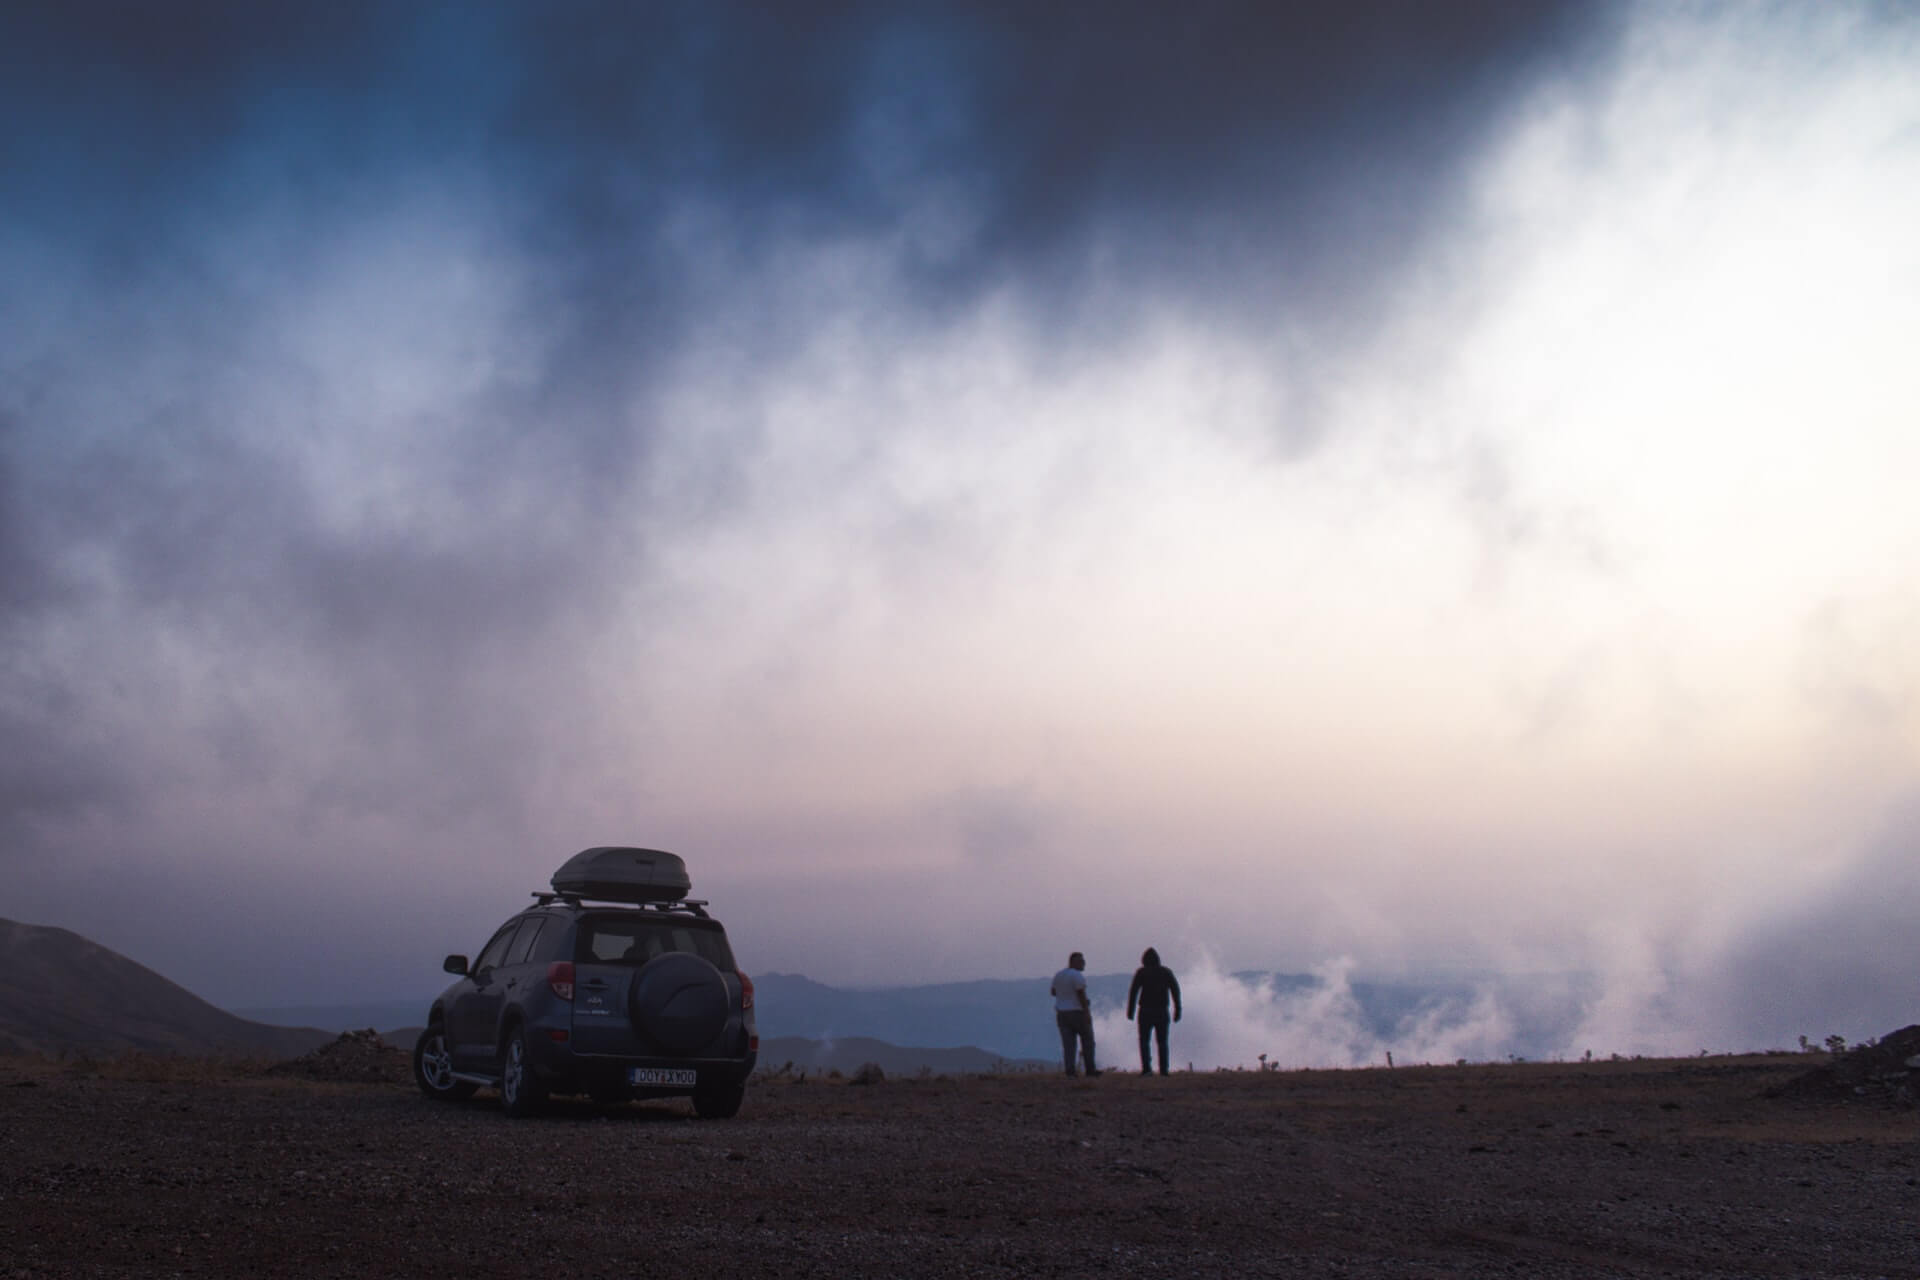 A travelling couple stand by their rental car on a misty morning in Greece